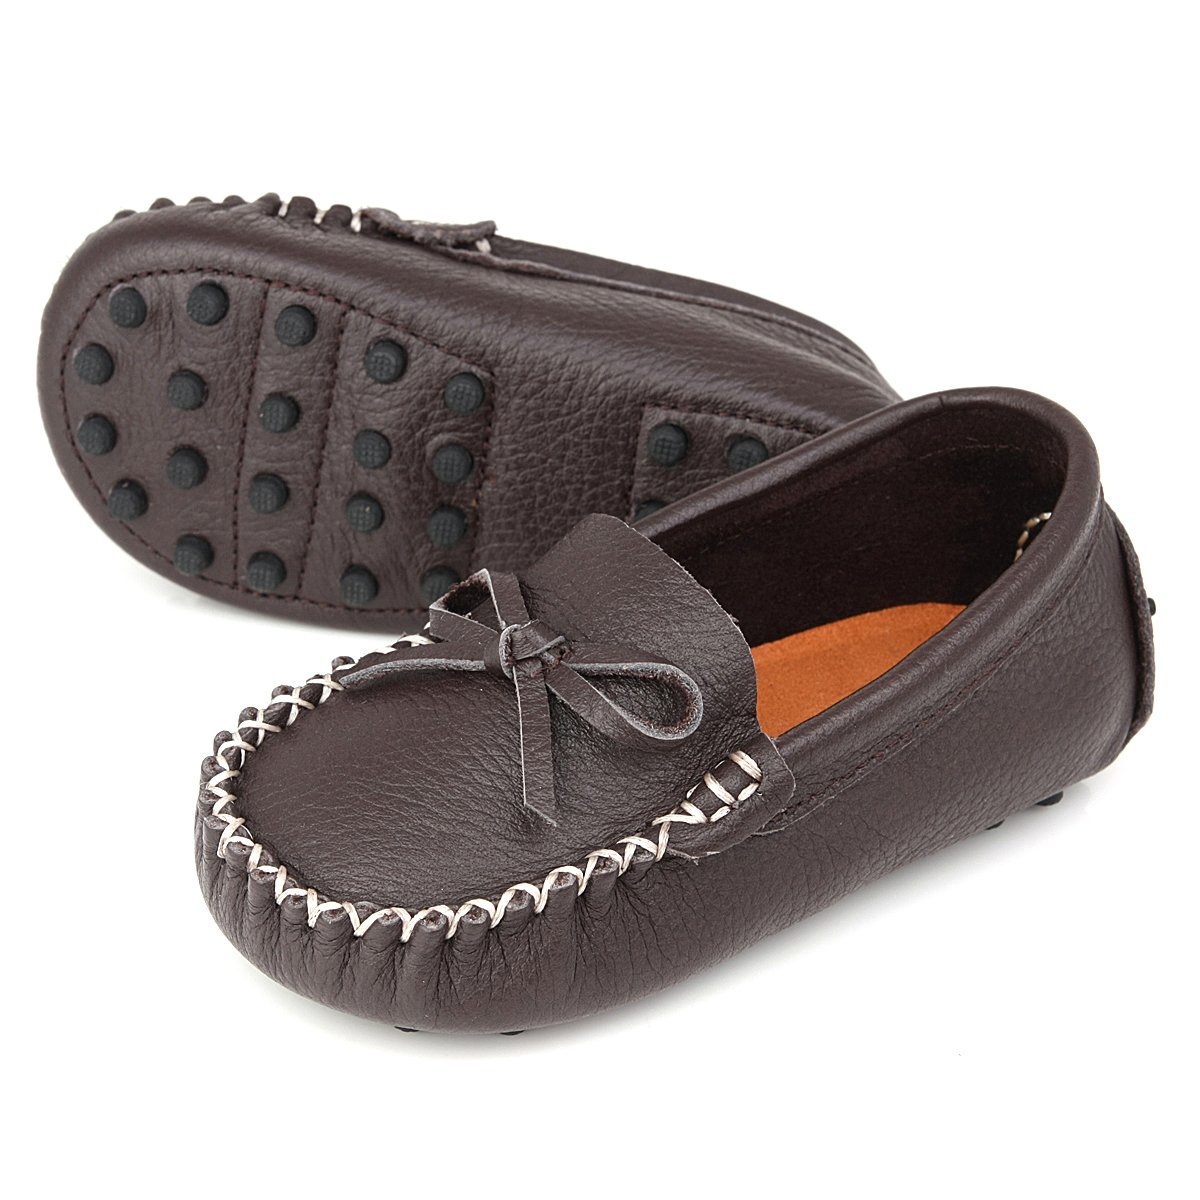 Augusta Baby Leather Loafers Boat Shoes Slip-on Moccasins with Gommino Sole - Safety Certified Genuine Leather - Chocolate - US Toddler 7